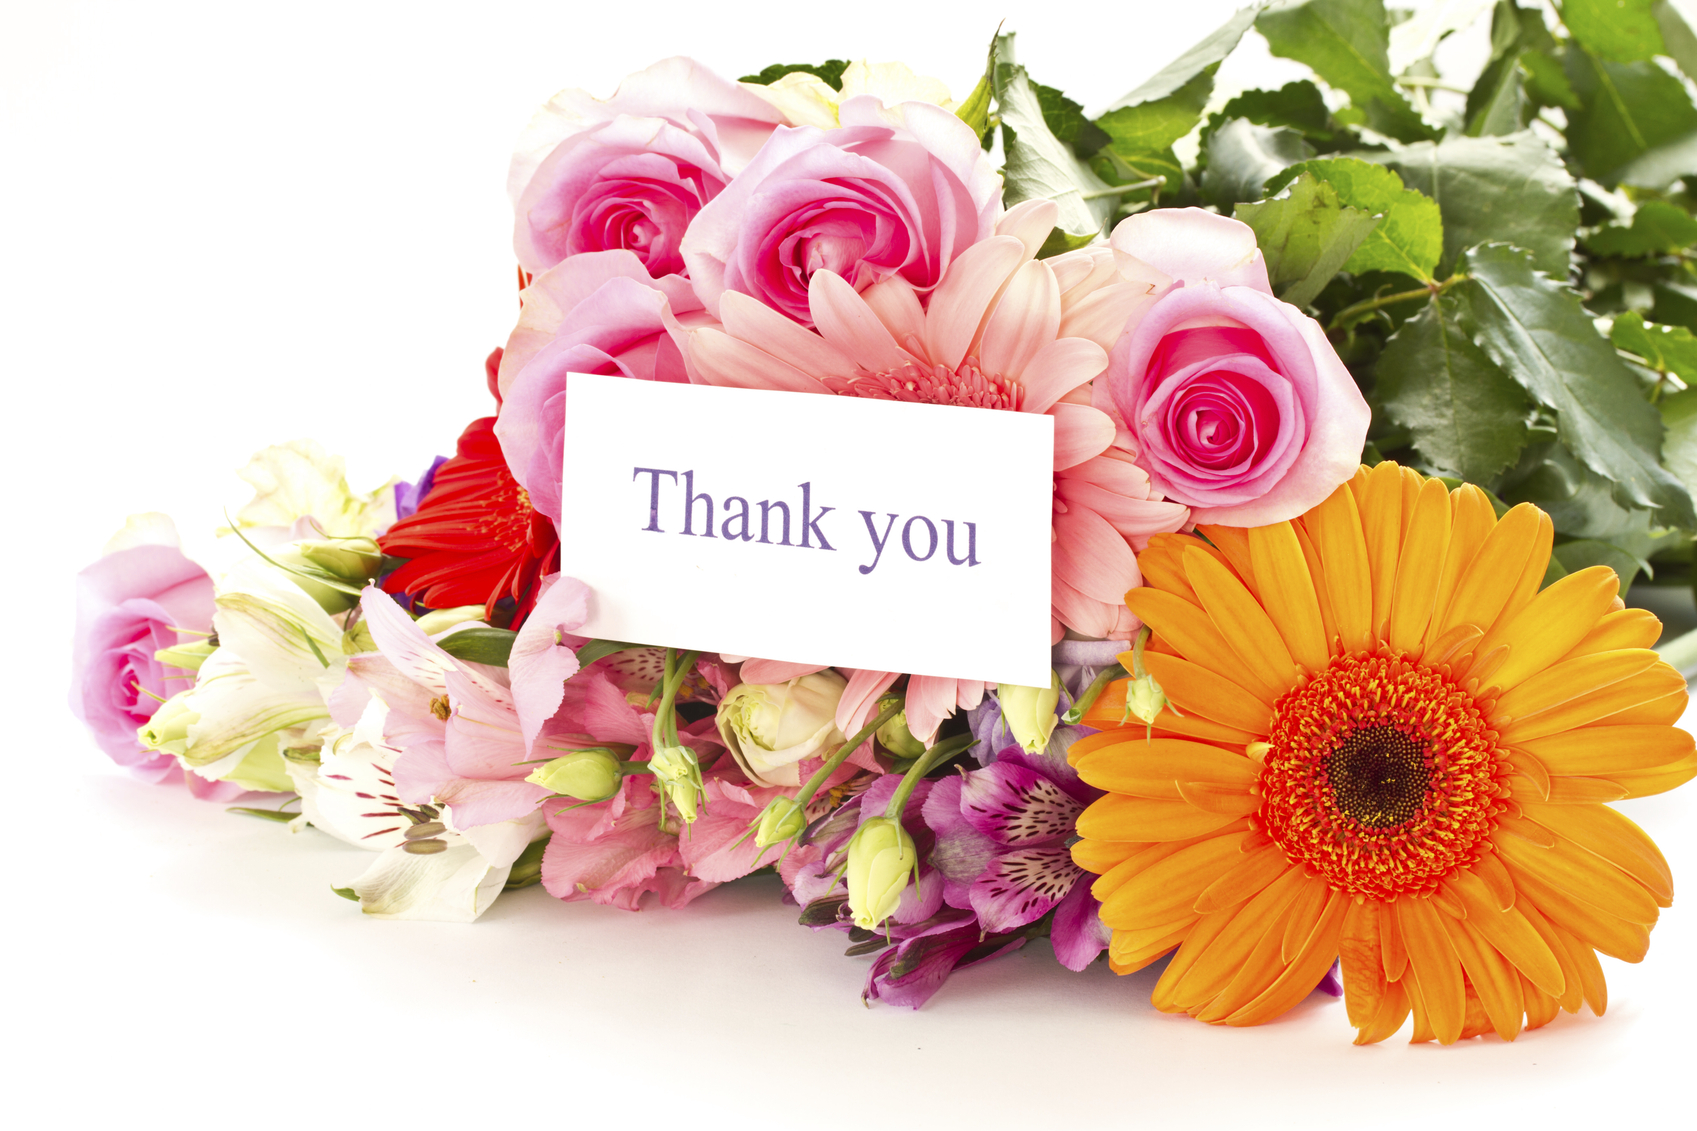 A thank you flower bouquet to illustrate thankfulness watertight a thank you flower bouquet to illustrate thankfulness izmirmasajfo